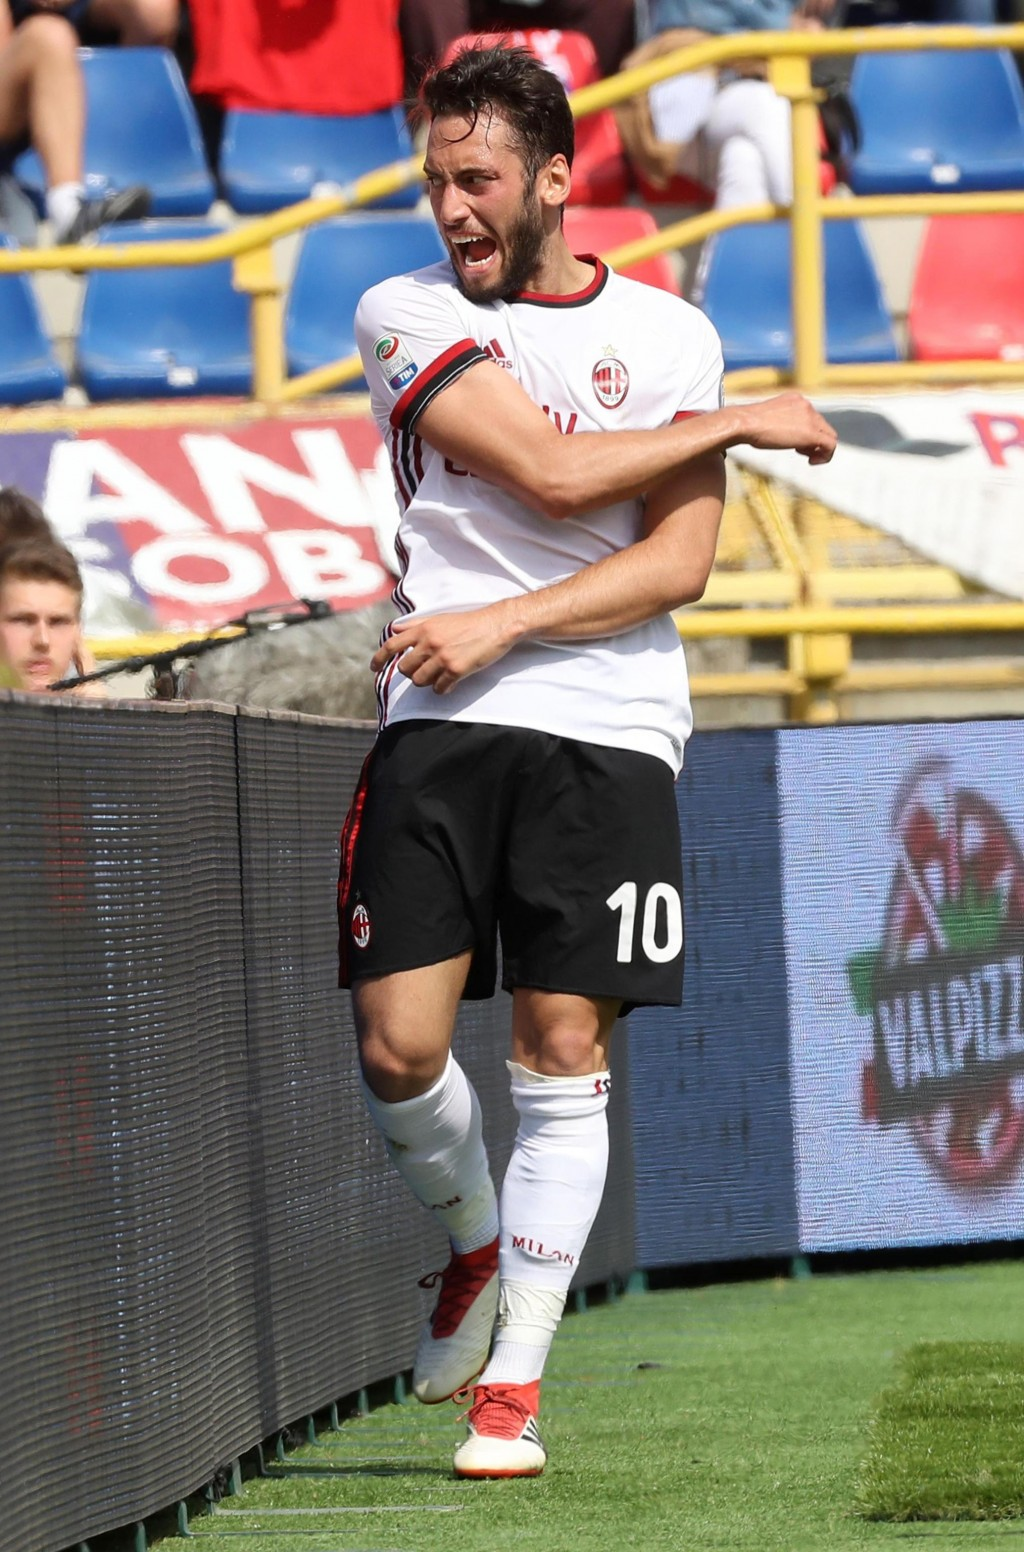 AC Milan's Hakan Calhanoglu celebrates after scoring during a serie A soccer match between Bologna and AC Milan at the Dall'Ara stadium, in Bologna, I...